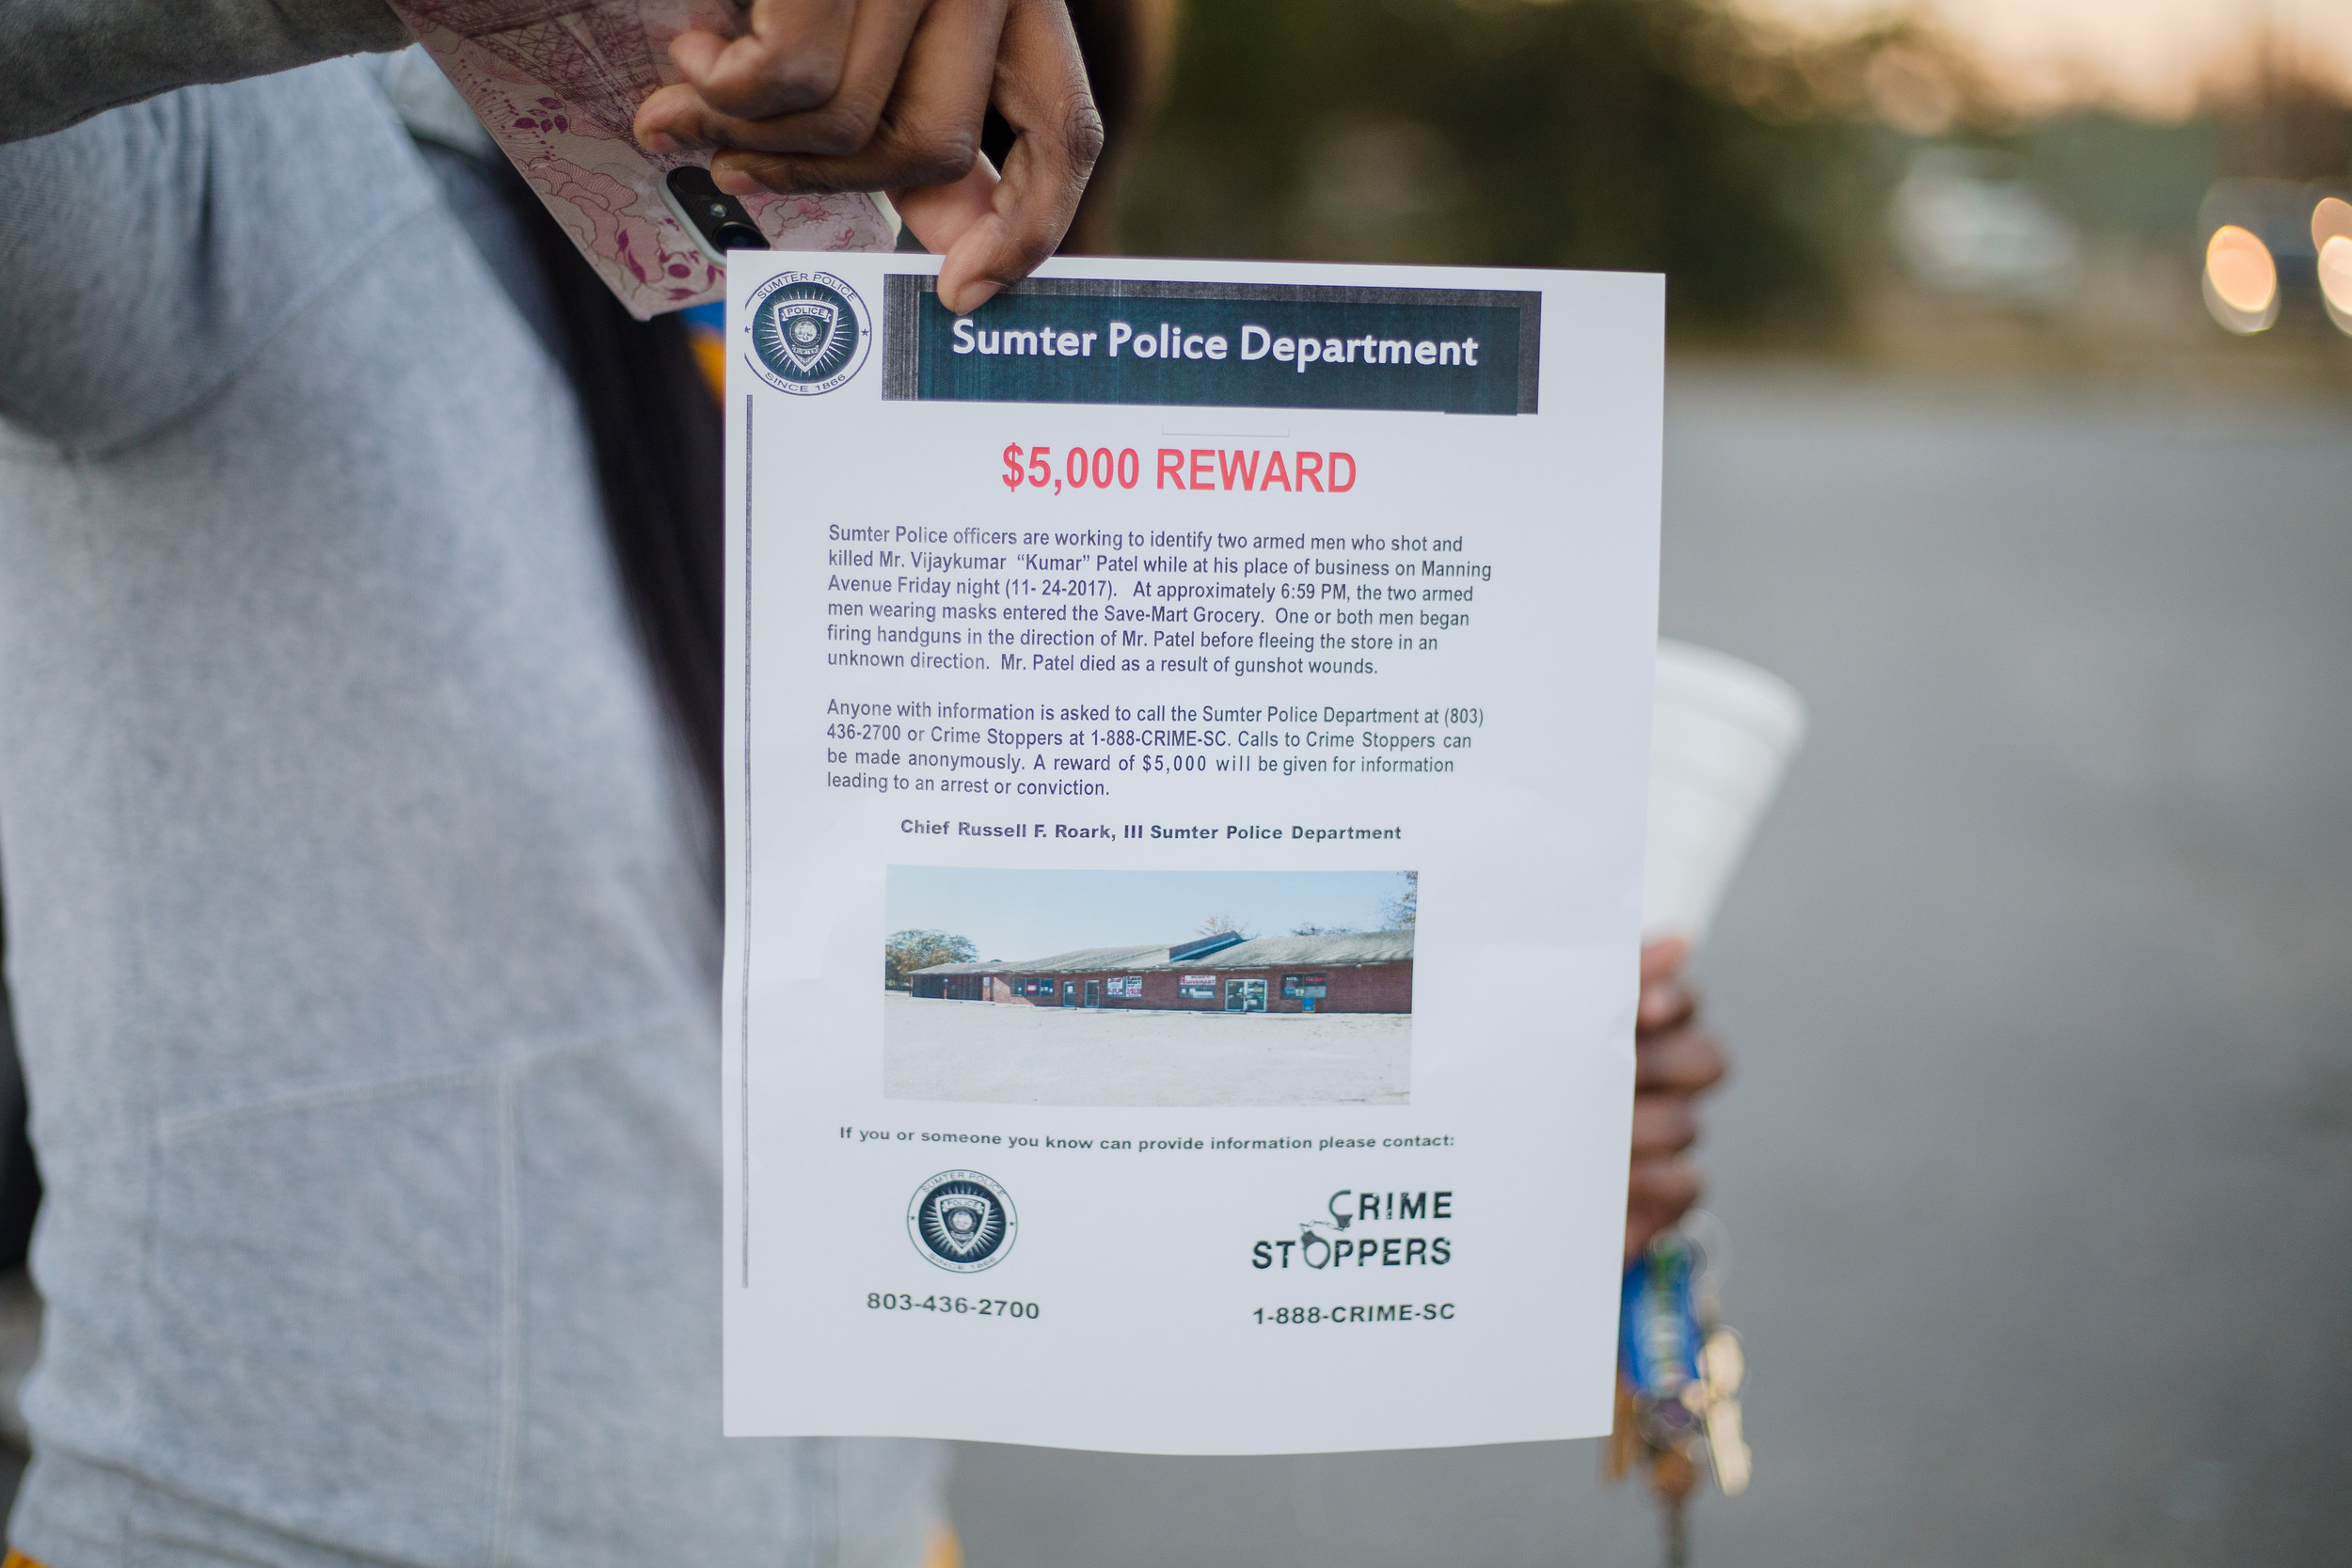 Handouts from the Sumter Police Department offering a reward for information.